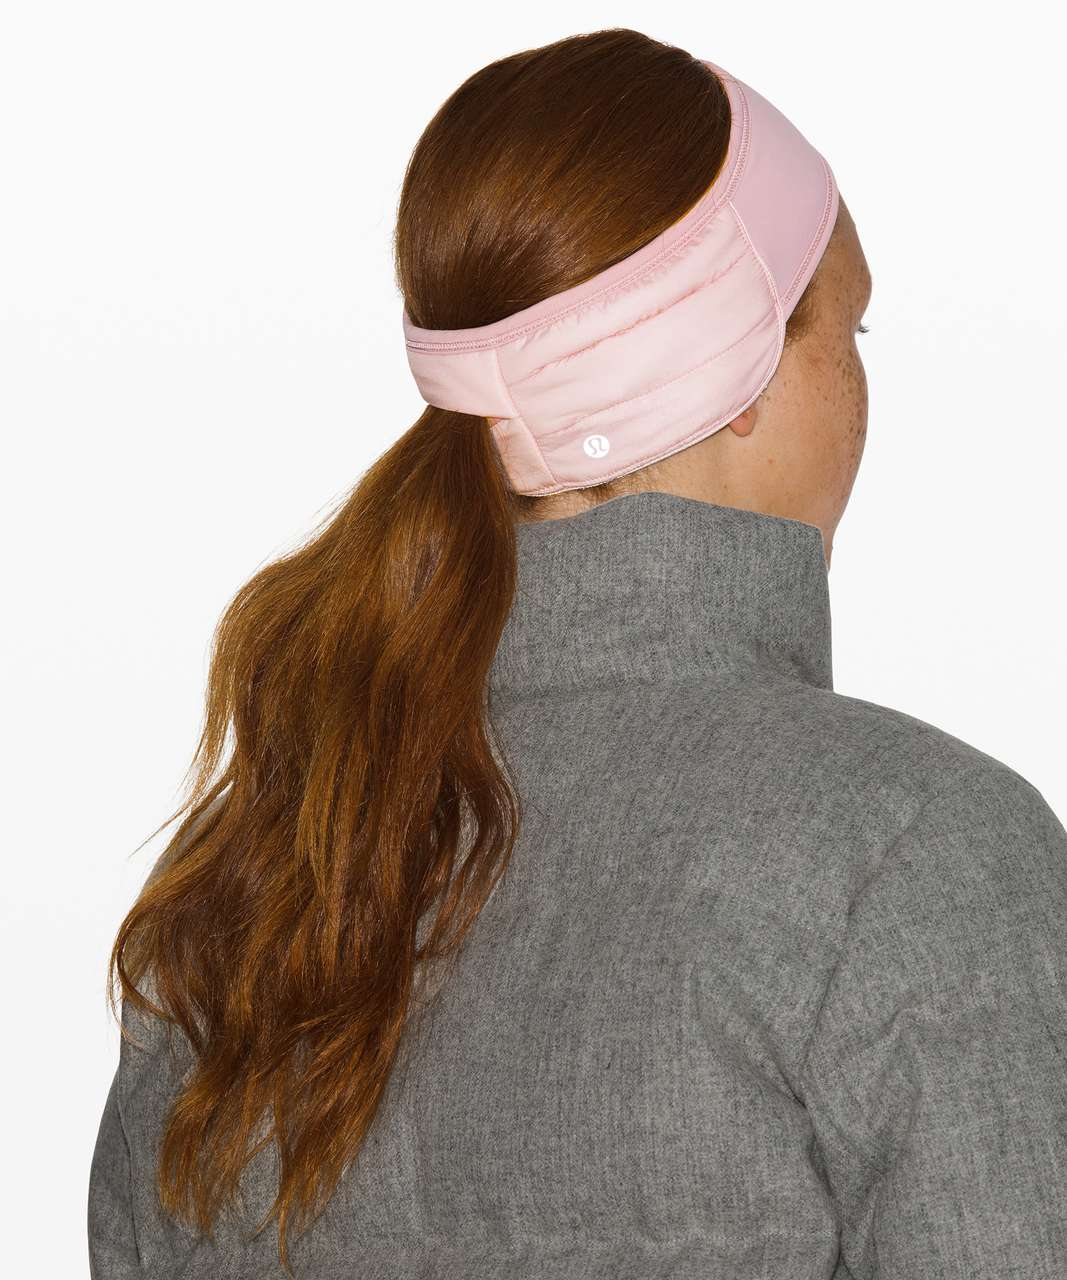 Lululemon Pinnacle Warmth Earwarmer - Porcelain Pink